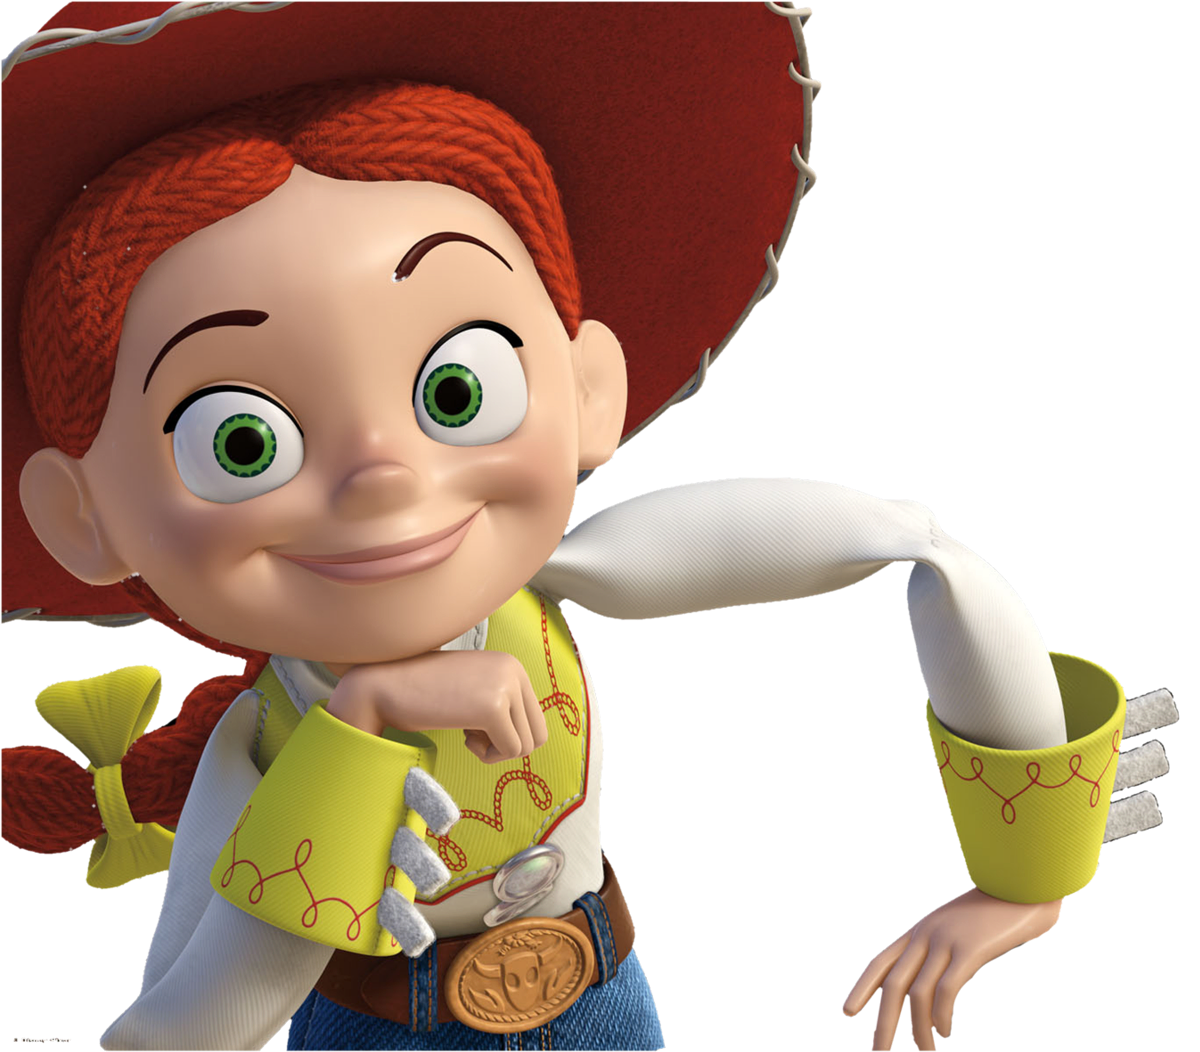 Image - Jessie from toy story 2.png | Disney Wiki | FANDOM powered by Wikia - PNG Toy Story